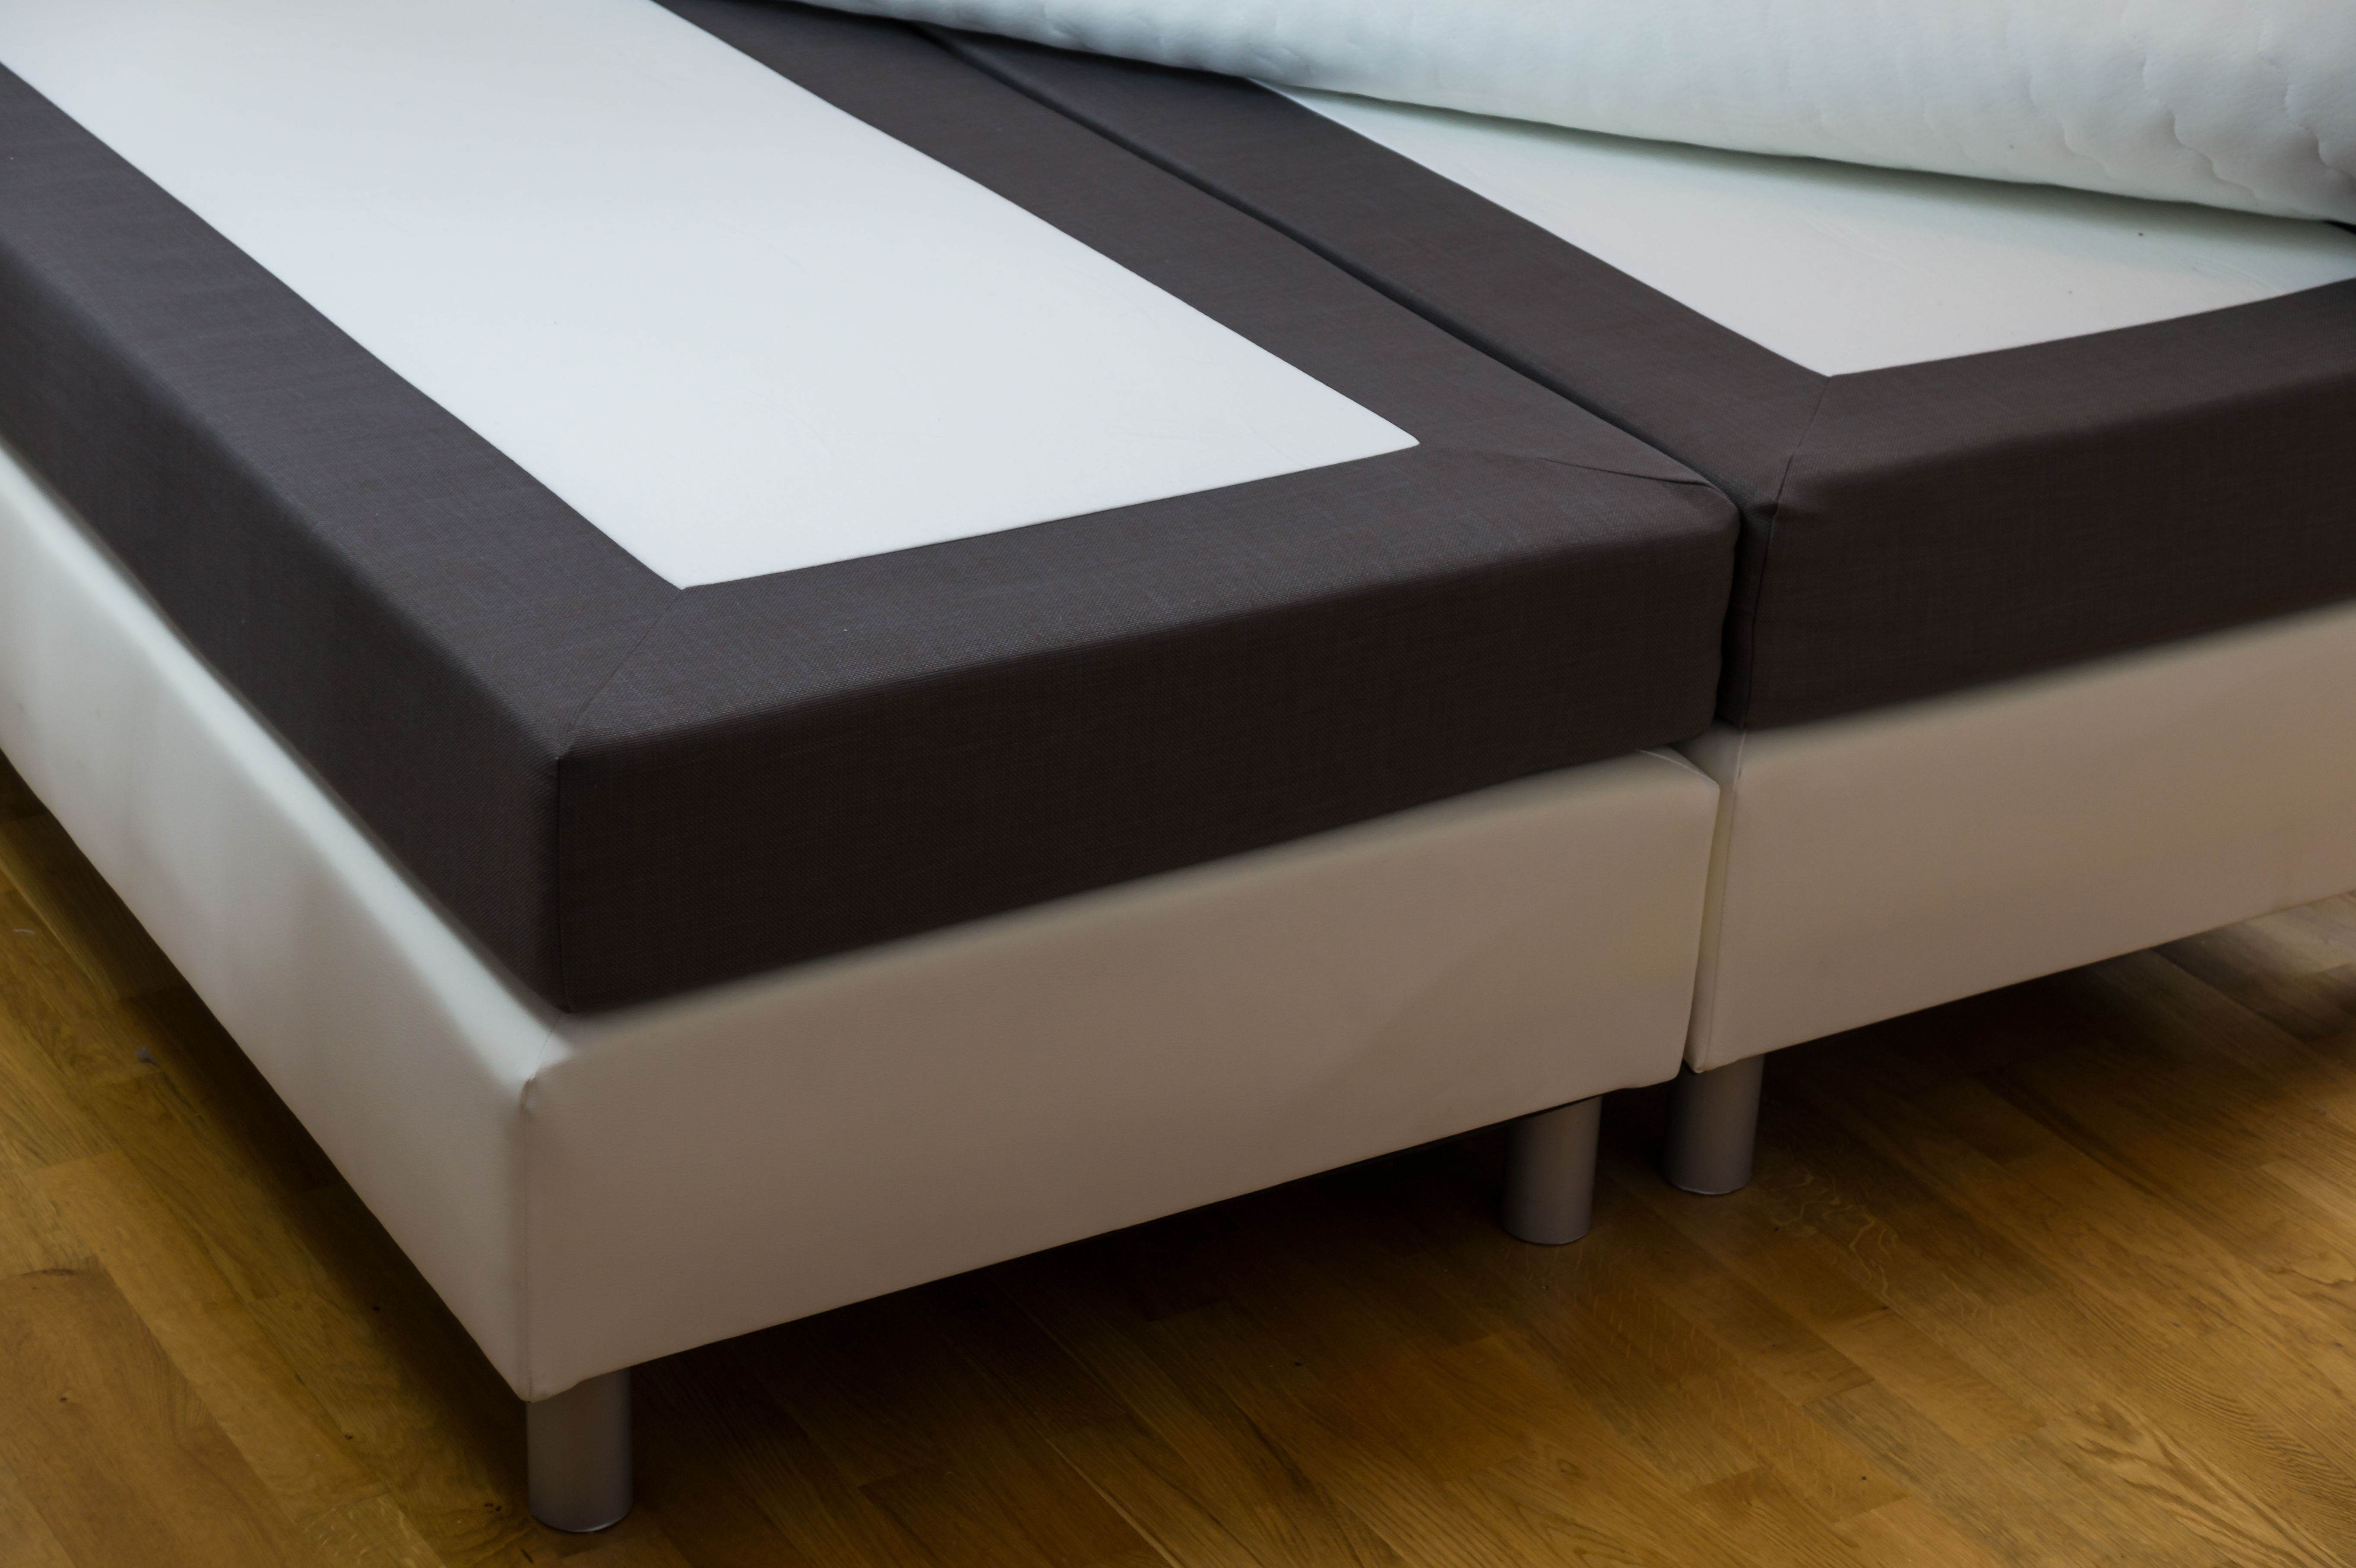 Do Beds With Slats Need A Box Spring Home Guides Sf Gate